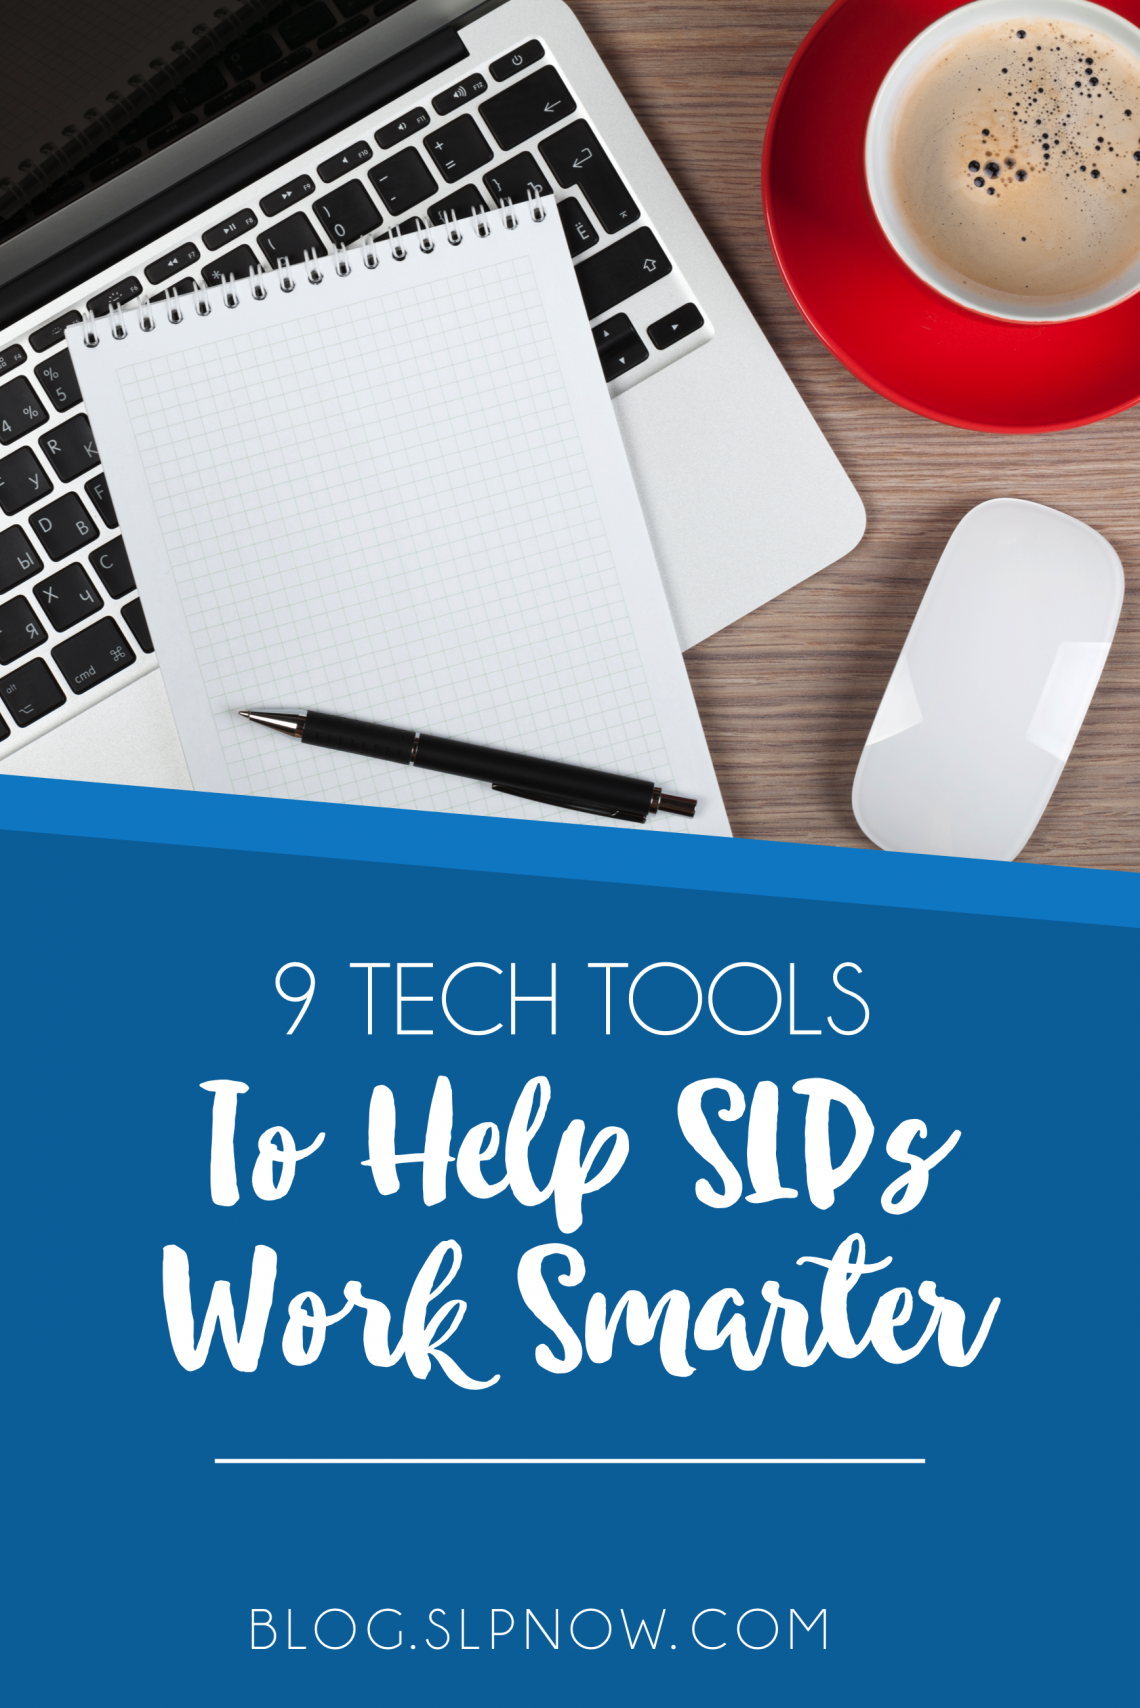 9 Tools for SLPs to Work Smarter: Tech Edition